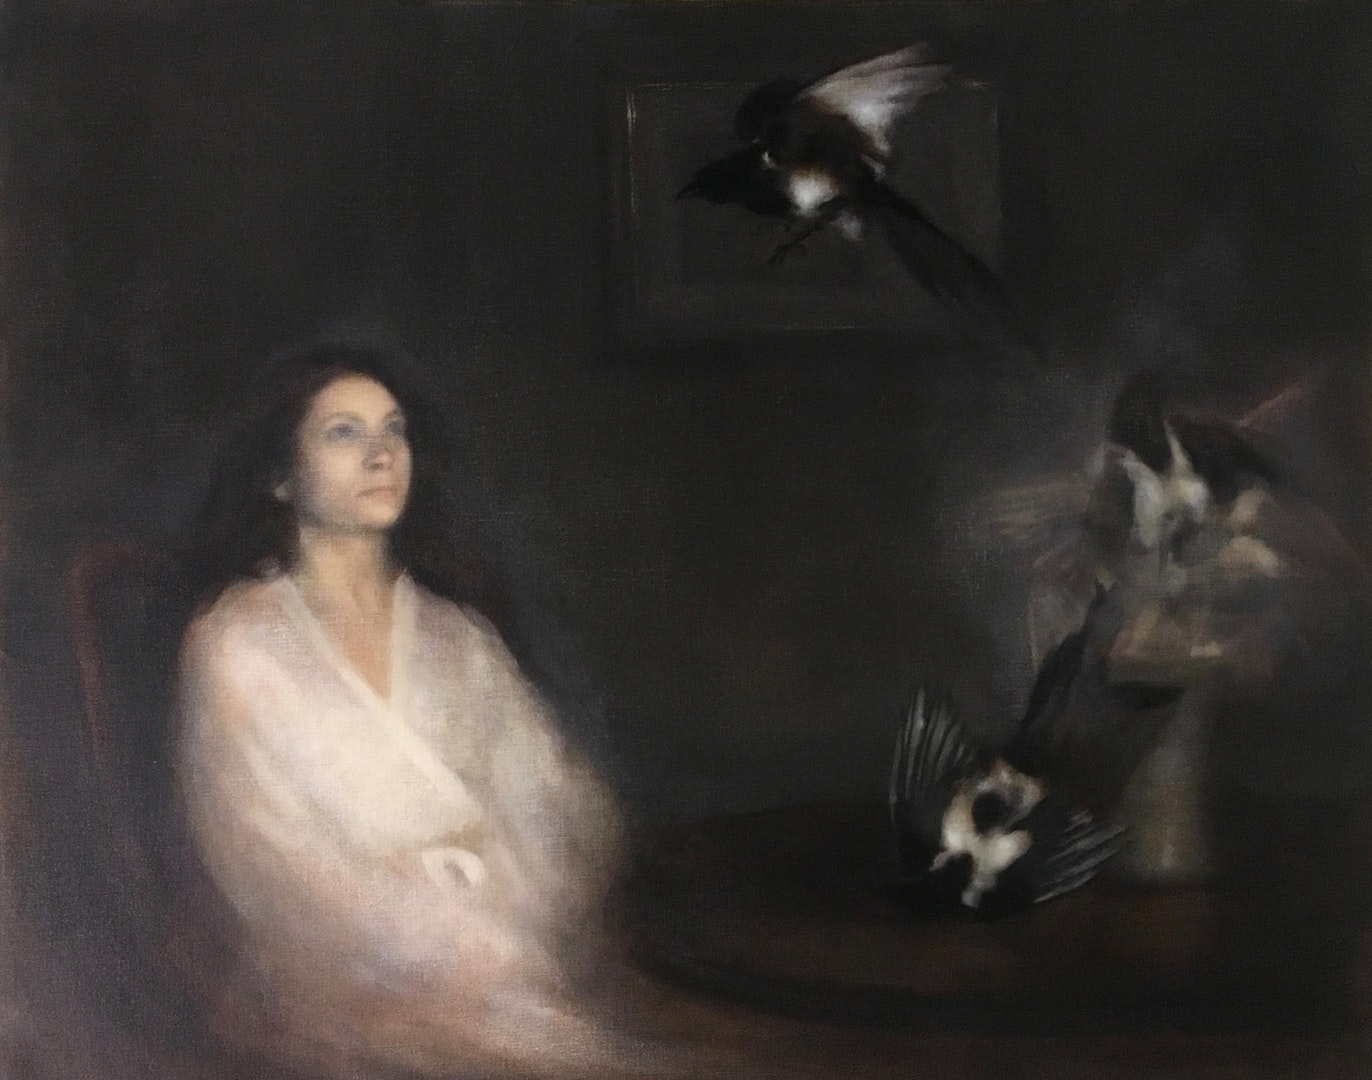 'Portrait of woman summoning magpies', Nneka Uzoigwe, Oil on linen, 82 x 102 x 5 cm